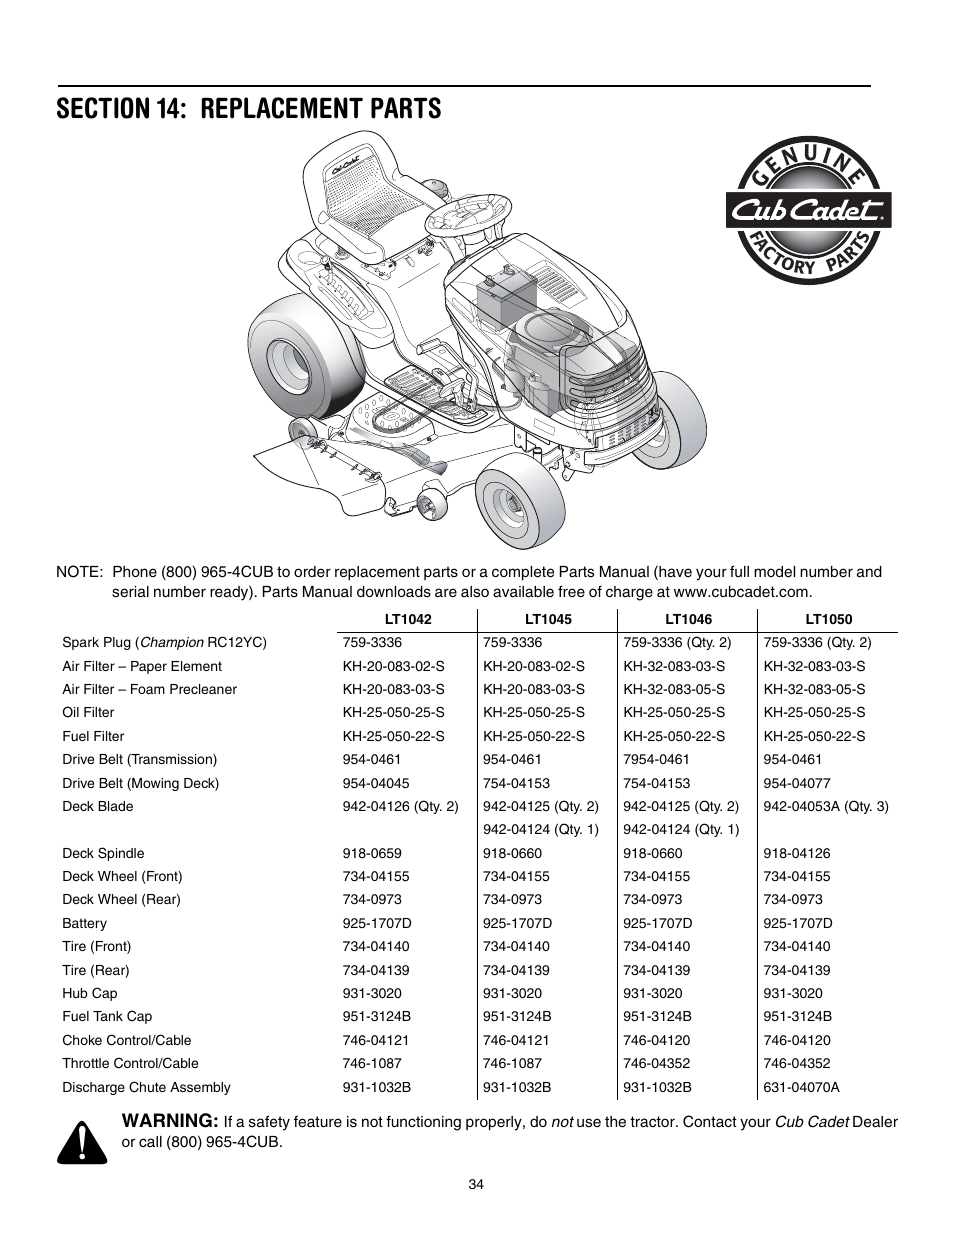 Section 14: replacement parts | Cub Cadet LT1042 User Manual | Page 34 / 40